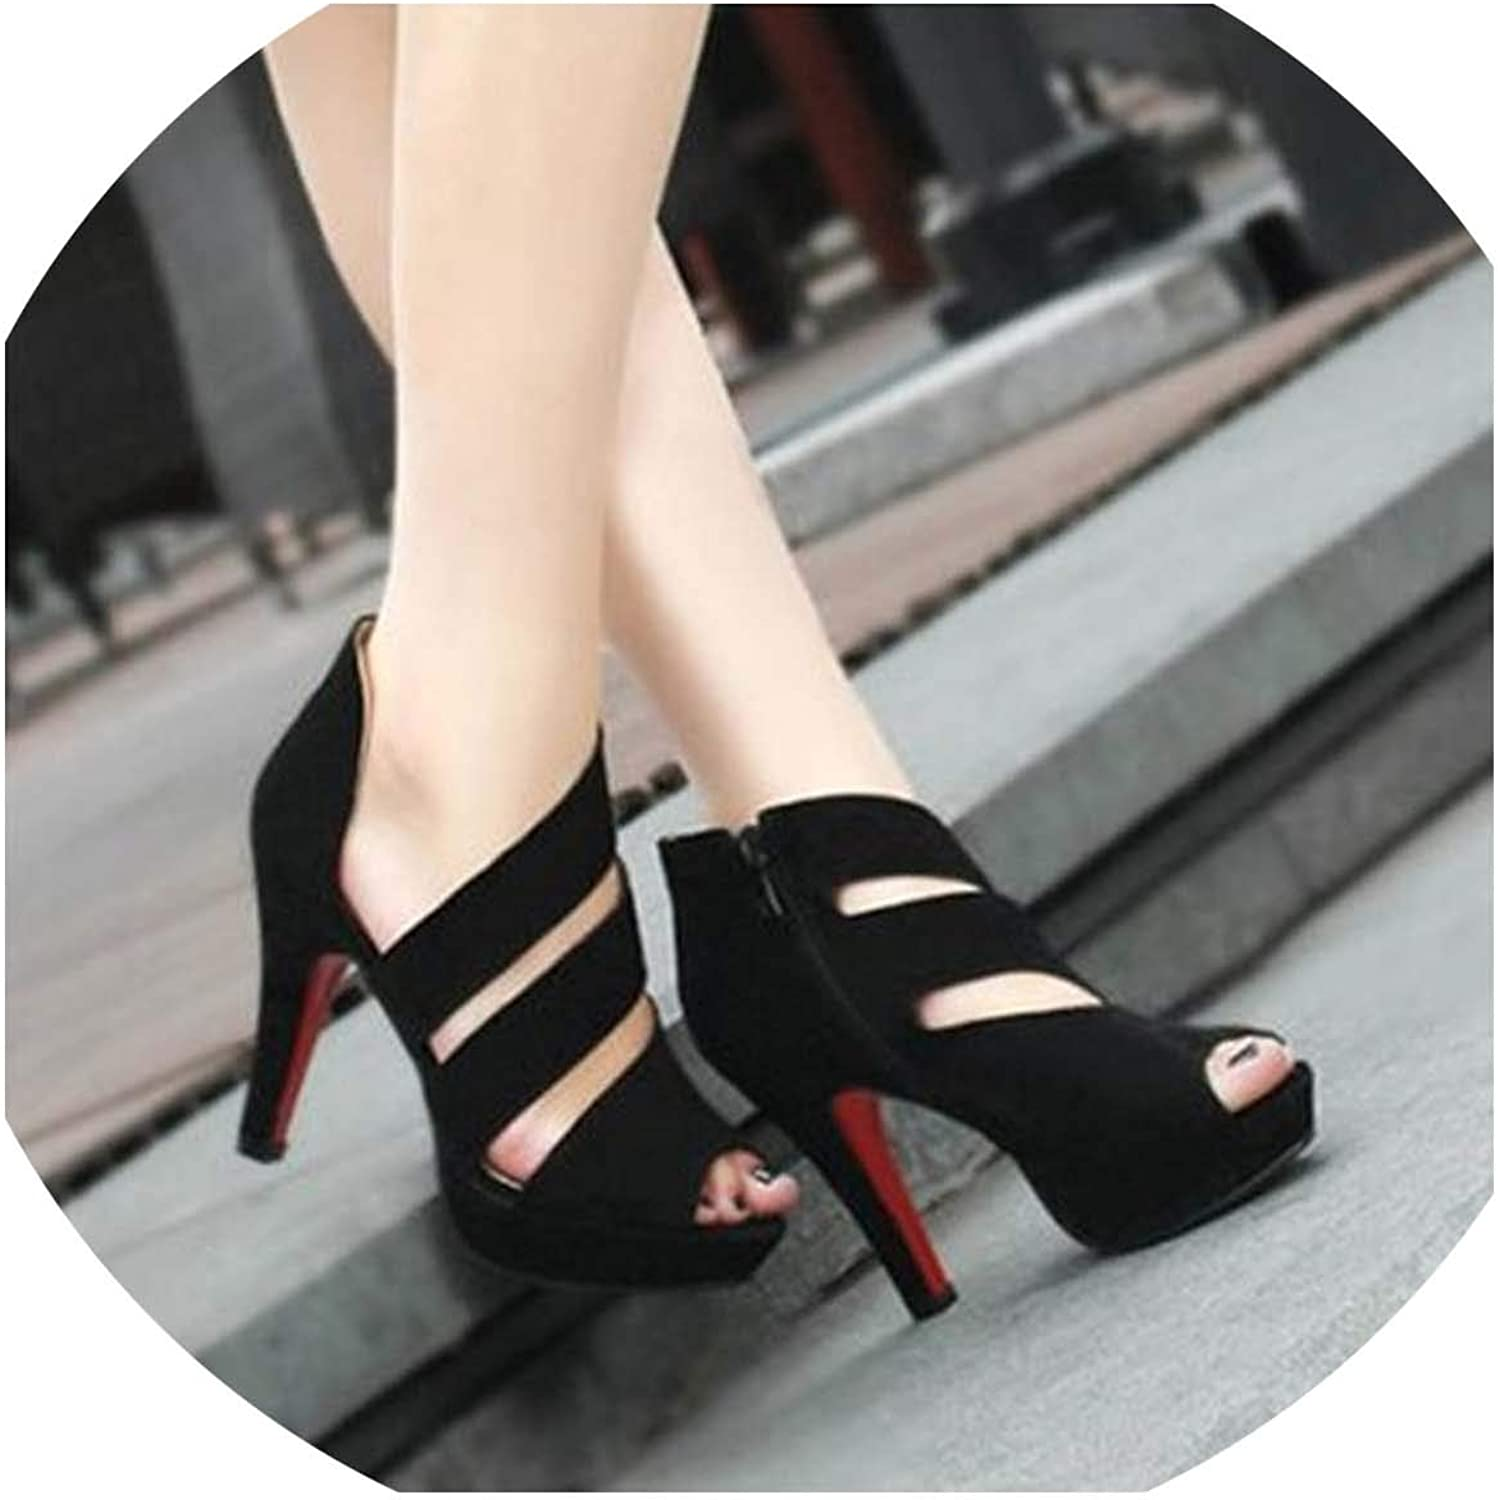 Women Sandals Sexy High Heel Elegant Flock Platform Buckle Strap Open Toe Pumps Party shoes